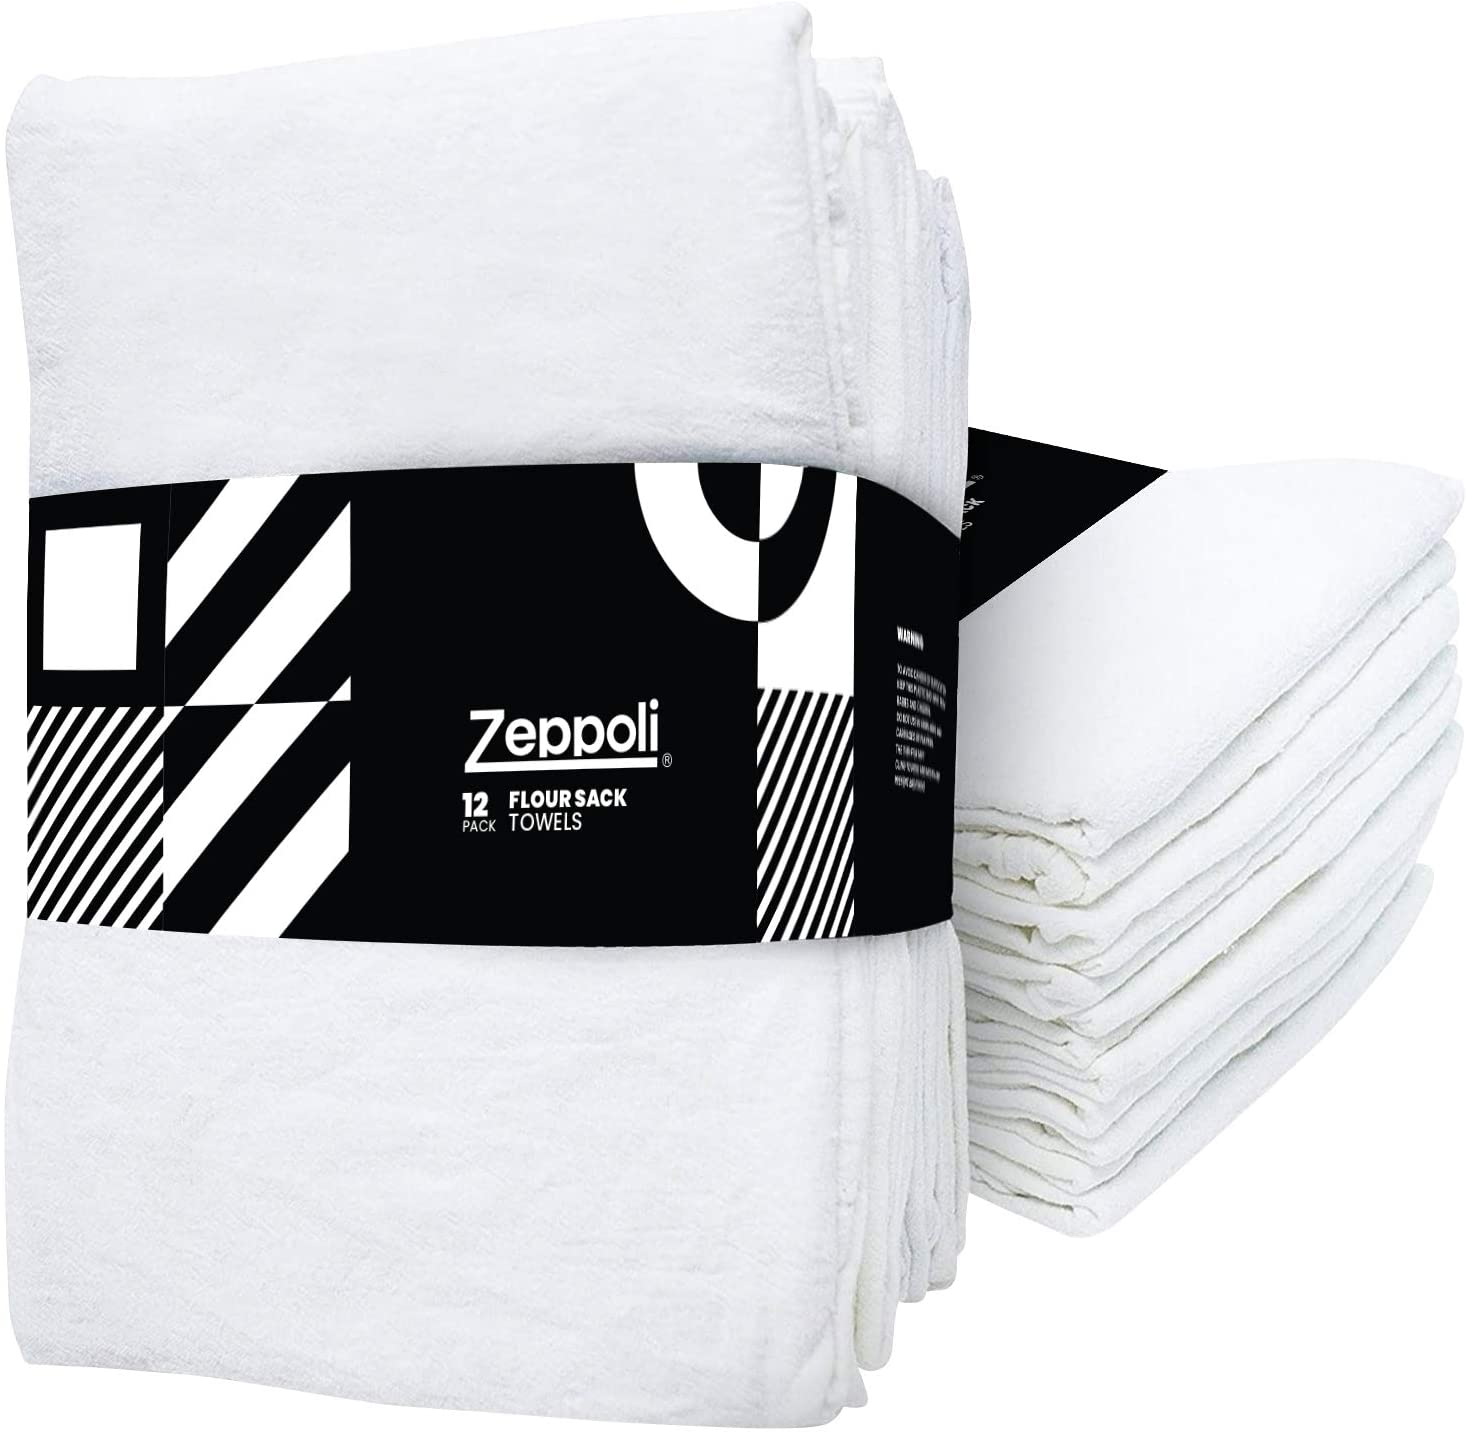 "Zeppoli 12-Pack Flour Sack Towels - 31"" x 31"" Kitchen Towels - Absorbent White Dish Towels - 100% Ring Spun Cotton Bar Towels: Home & Kitchen"